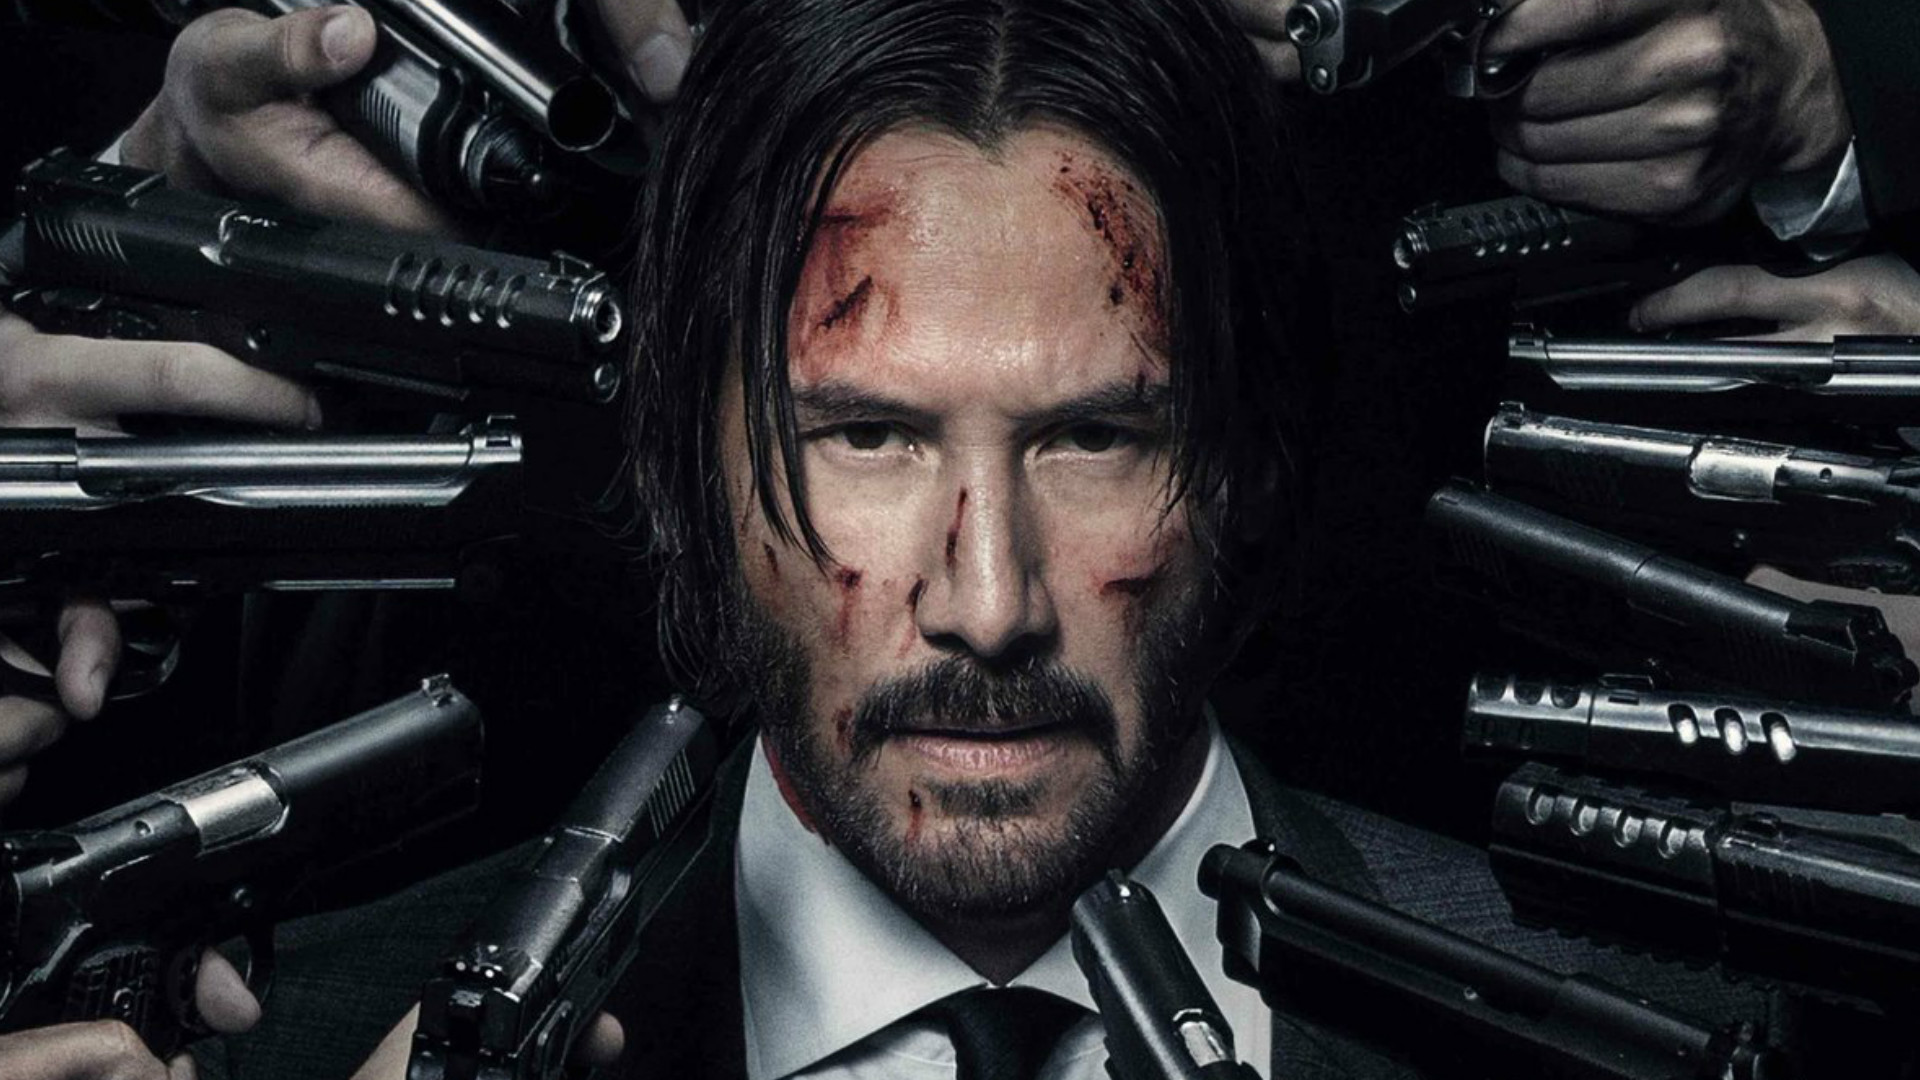 John Wick 2 trailer Keanu Reeves guns